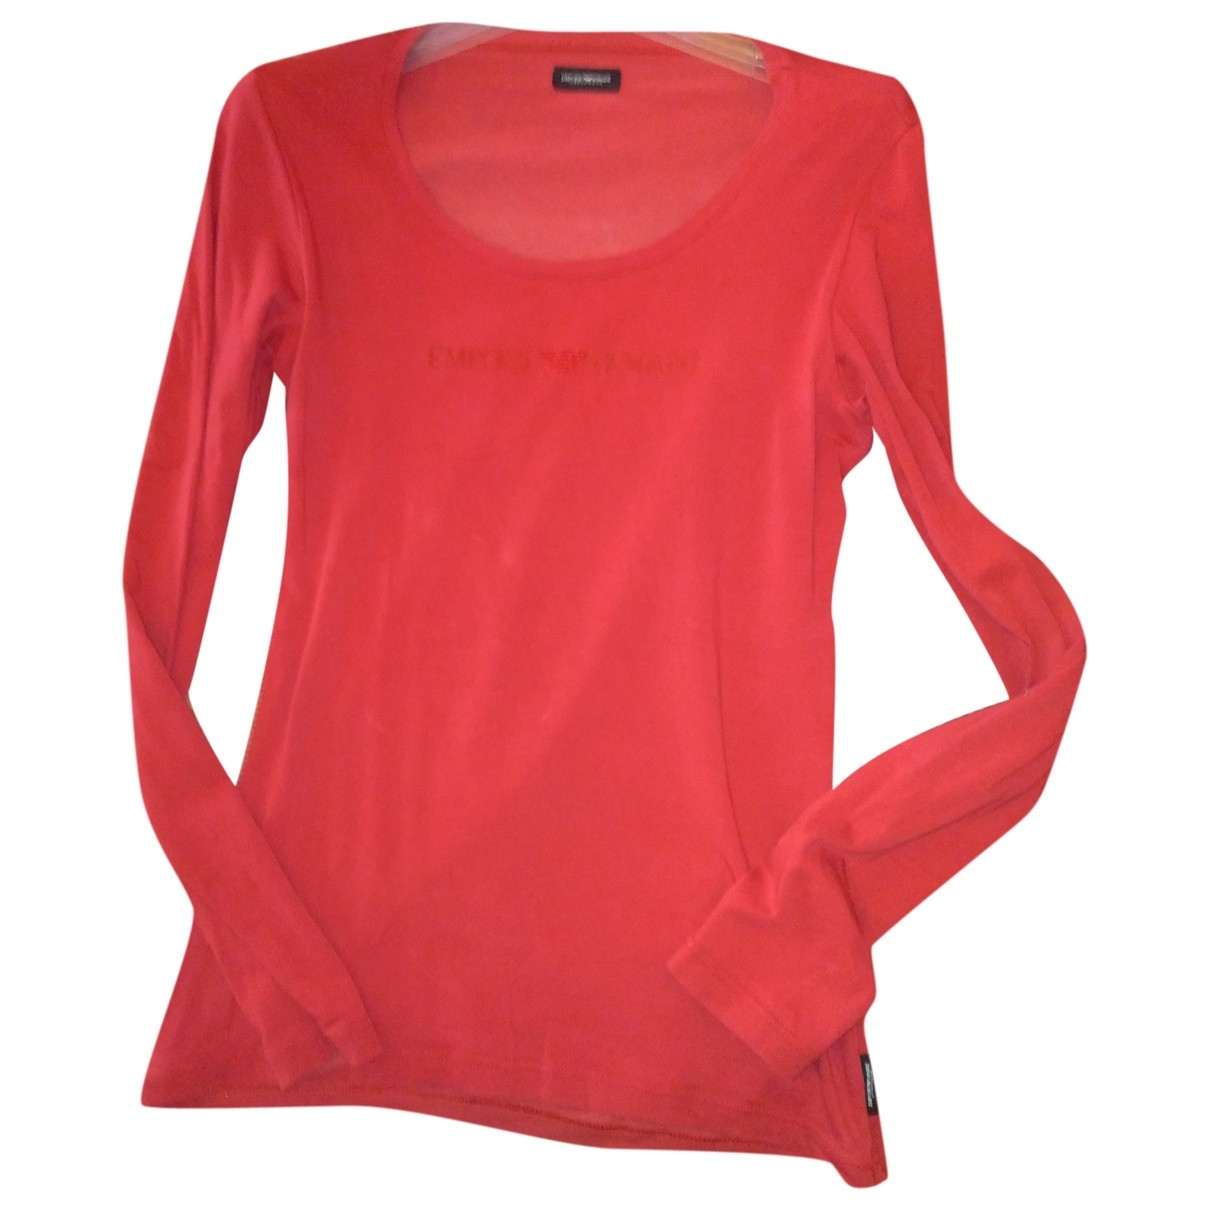 Emporio Armani \N Pullover in  Rot Baumwolle